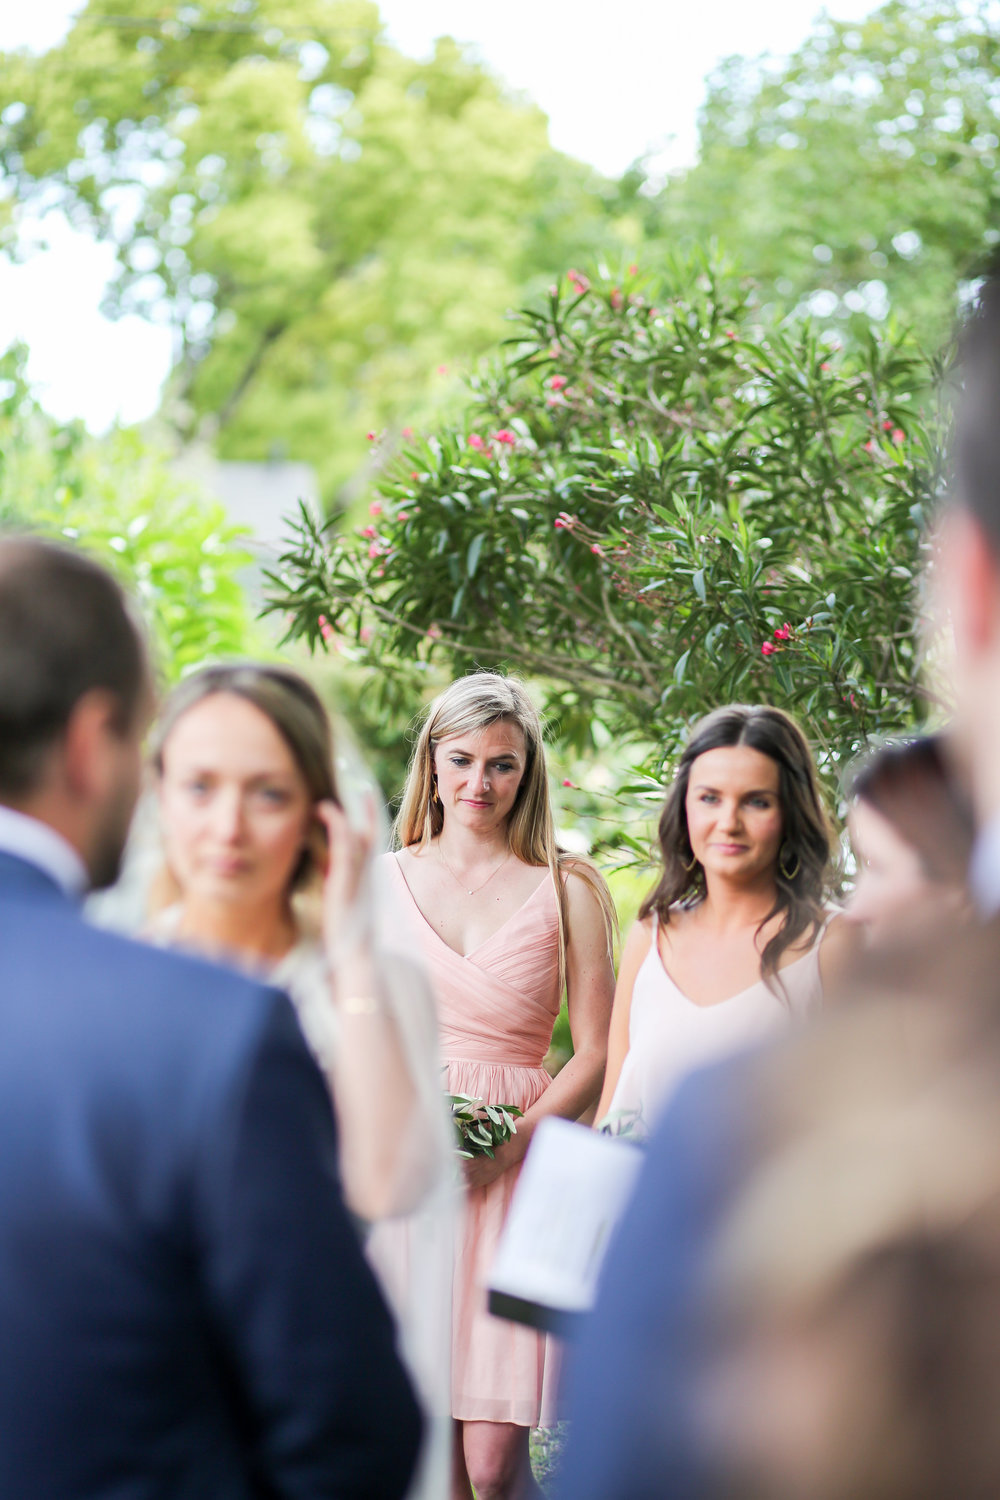 AllisonandScott'sApril2016Wedding-289.jpg